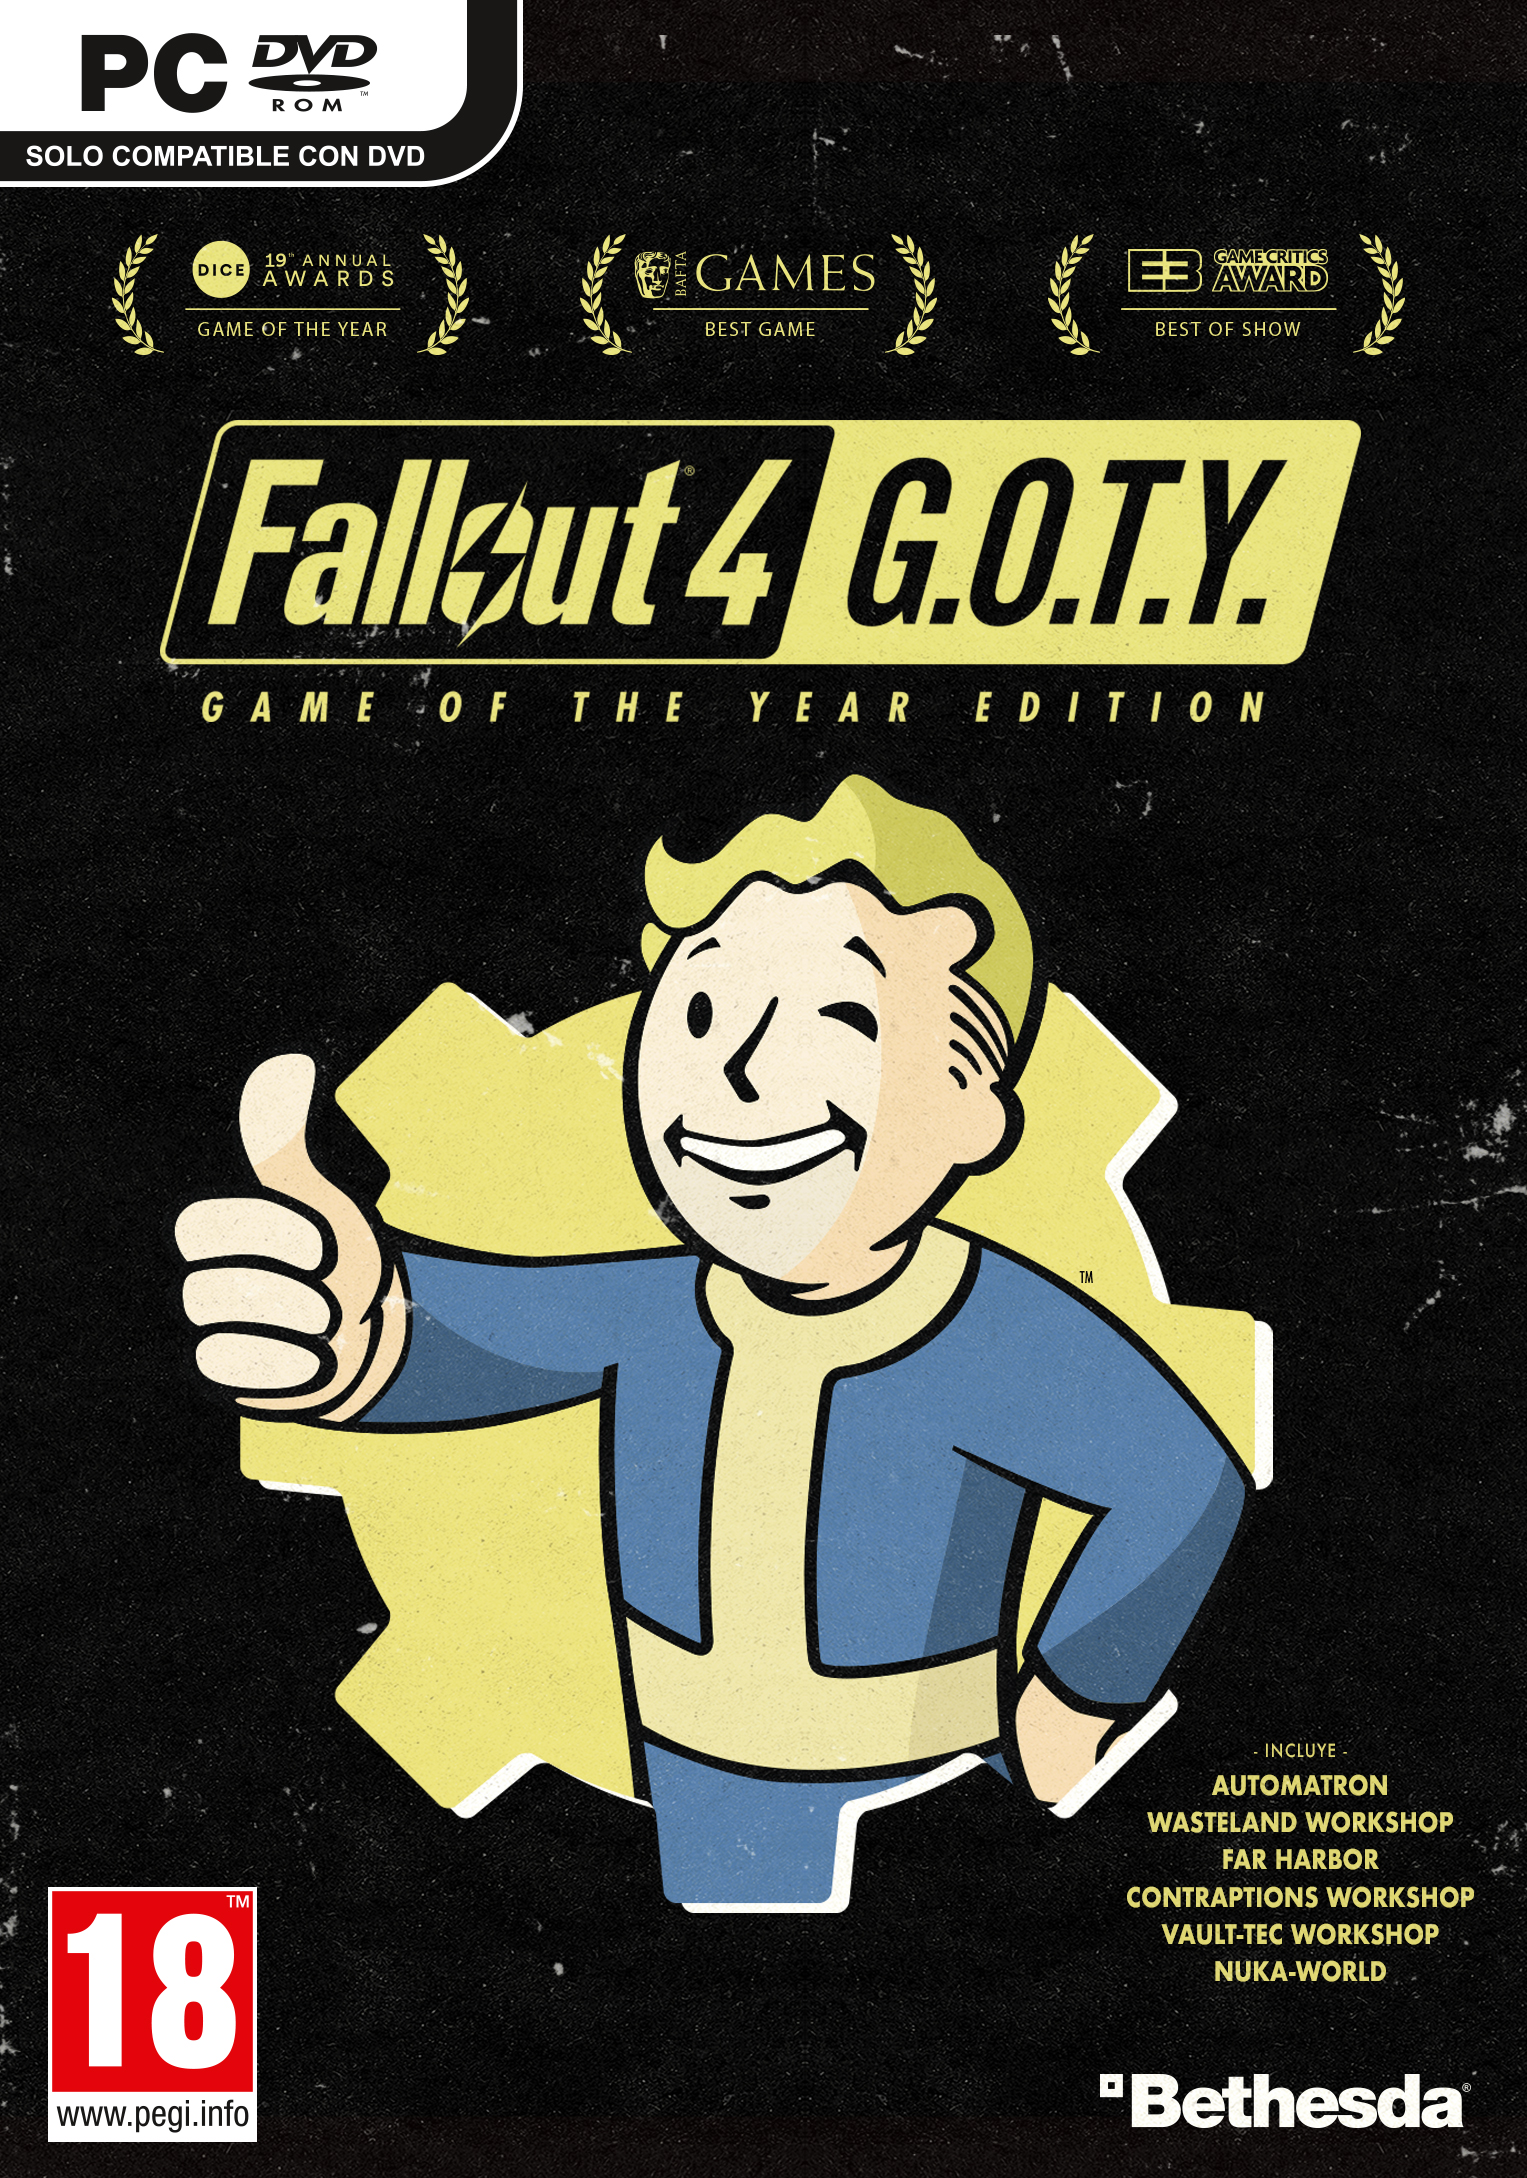 Fallout 4 Game of the Year Edition PC Boxart